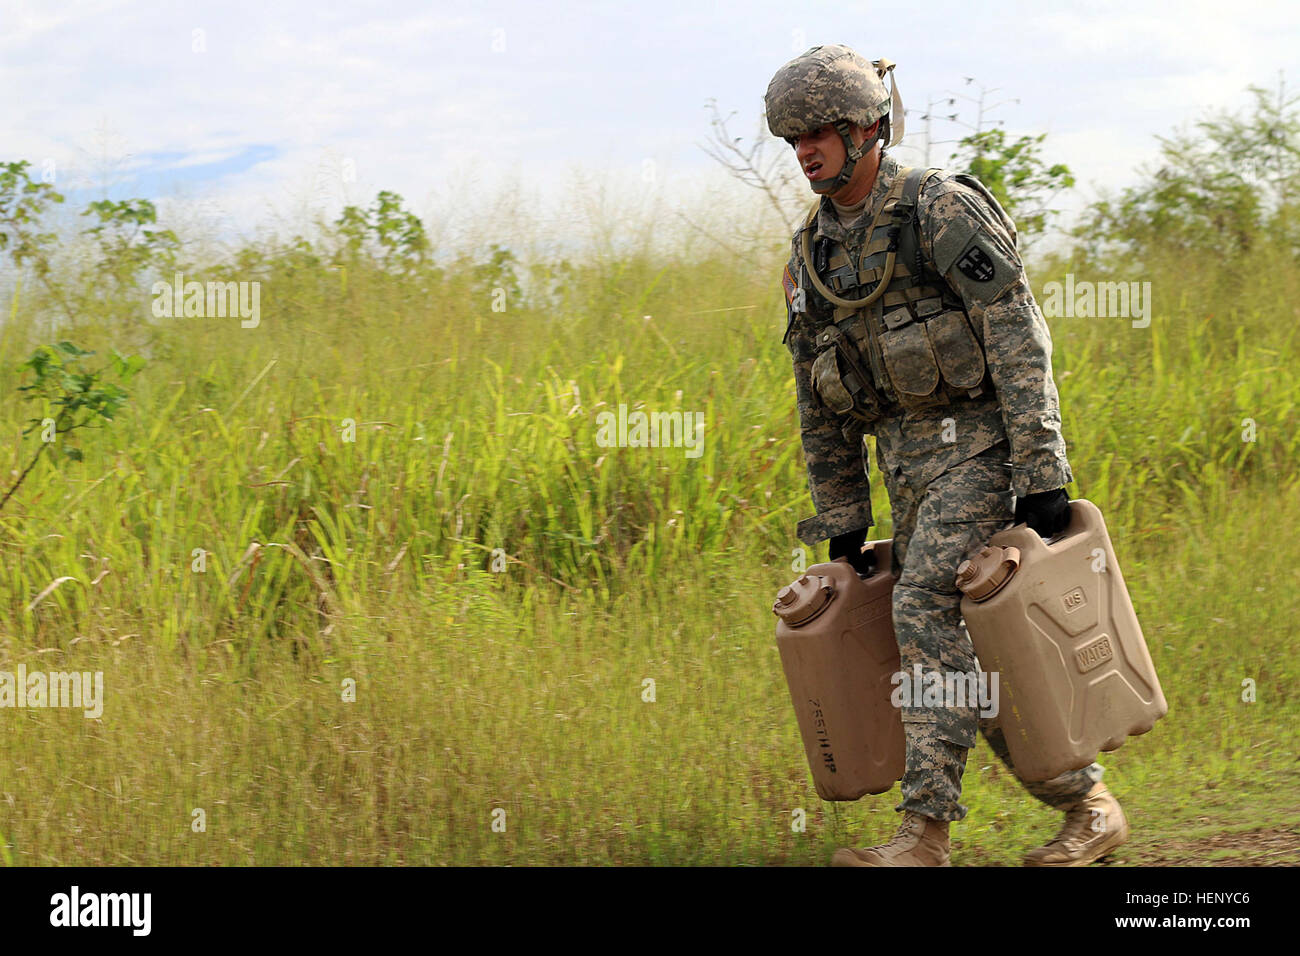 Army Sgt. Gregory J. Maldonado carries two water canisters as part of the third station of the obstacle course for - Stock Image